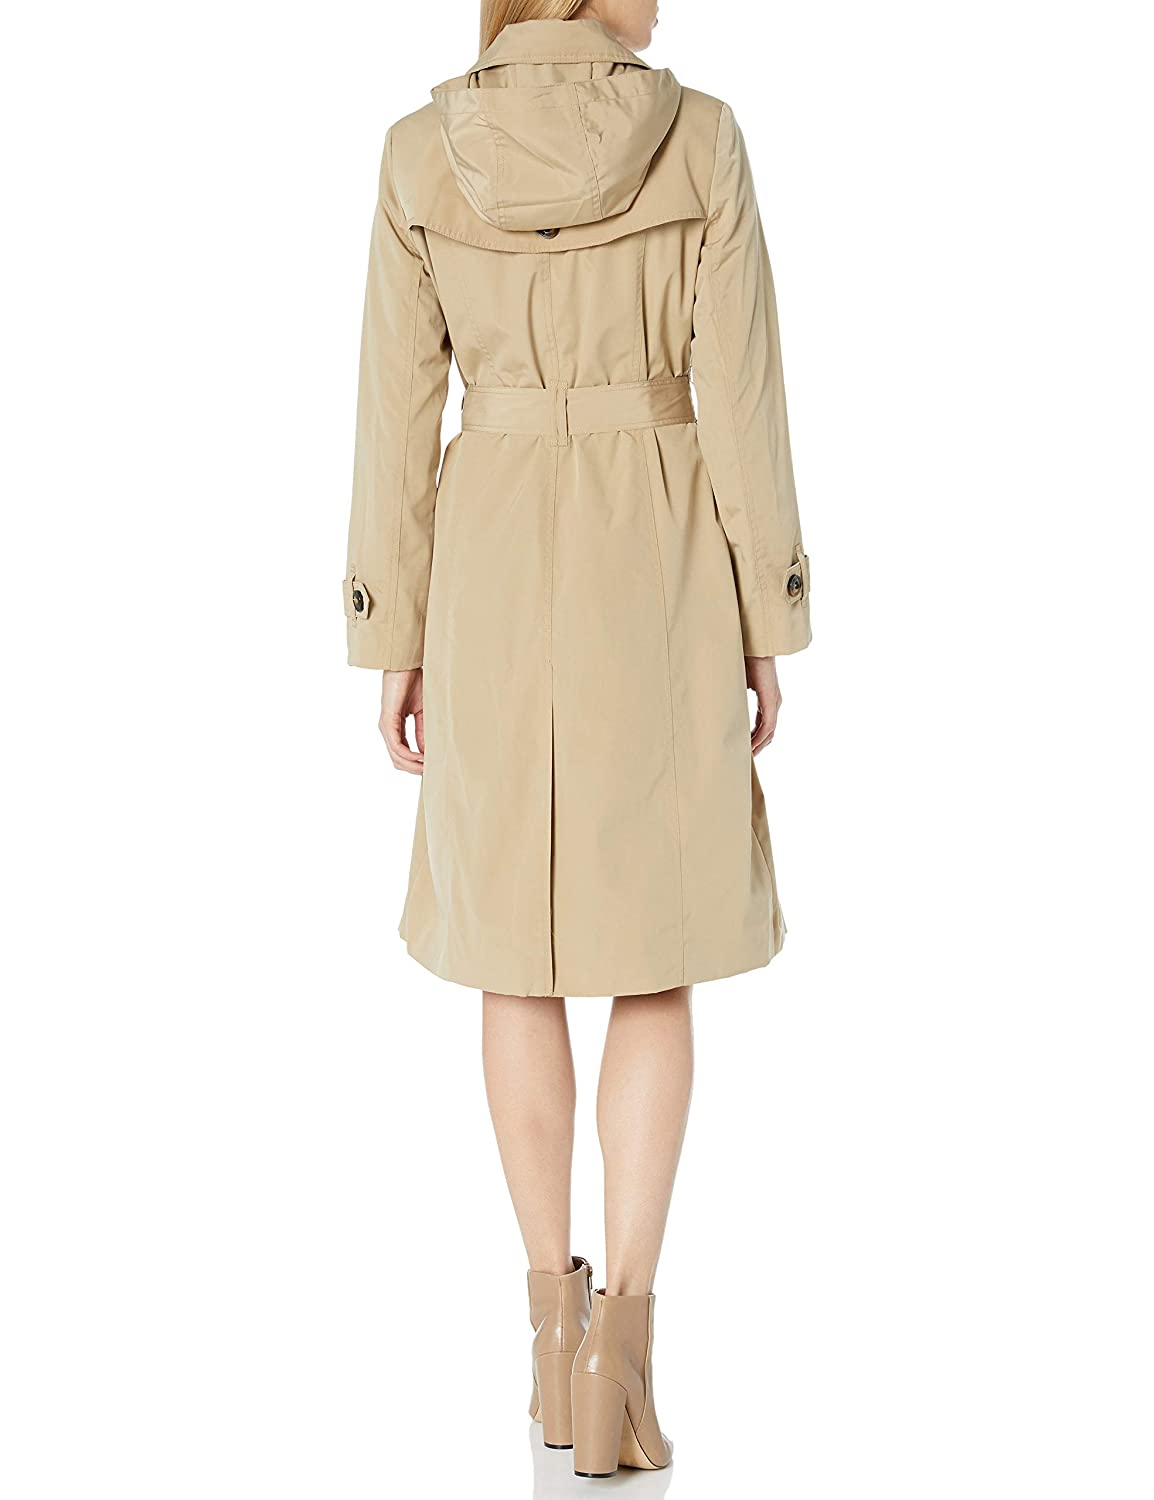 London Fog Womens Single Breasted Belted Trench with Hood Raincoat